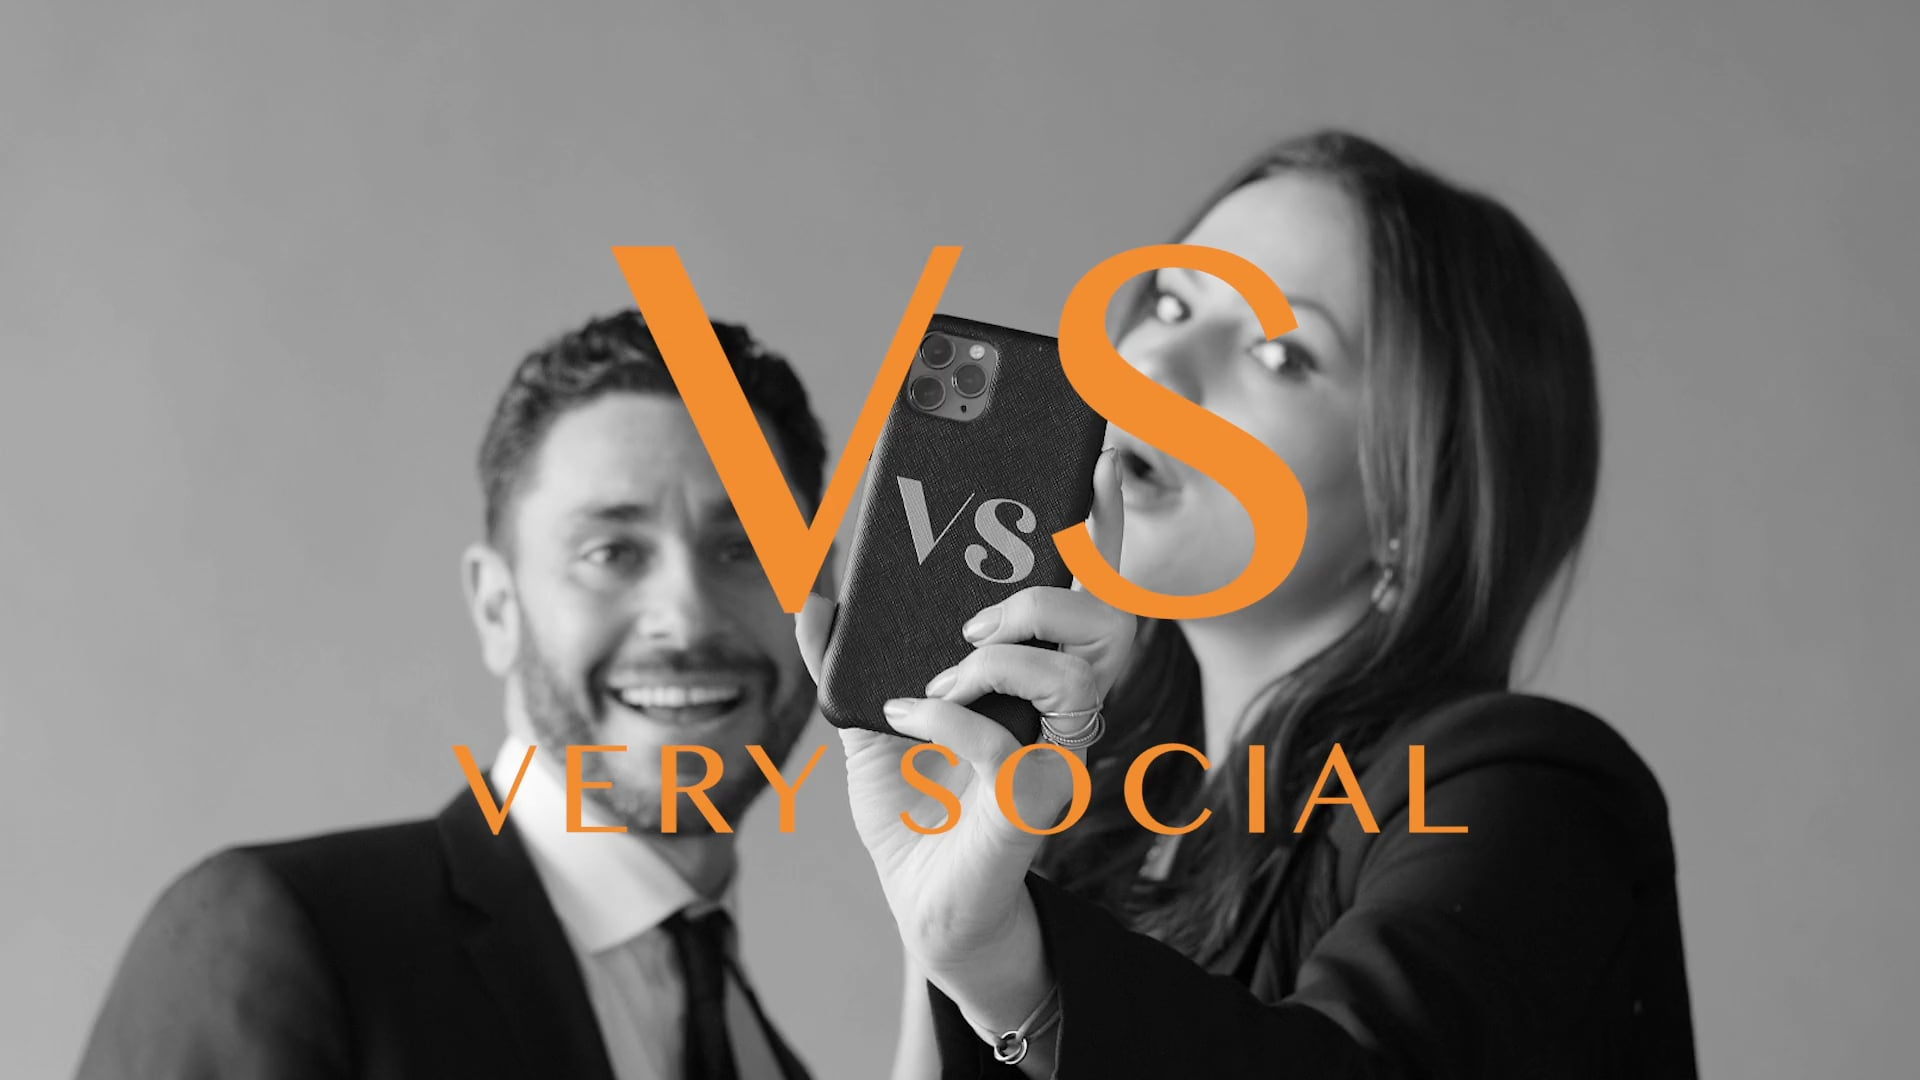 VERY SOCIAL LAUNCH CAMPAIGN